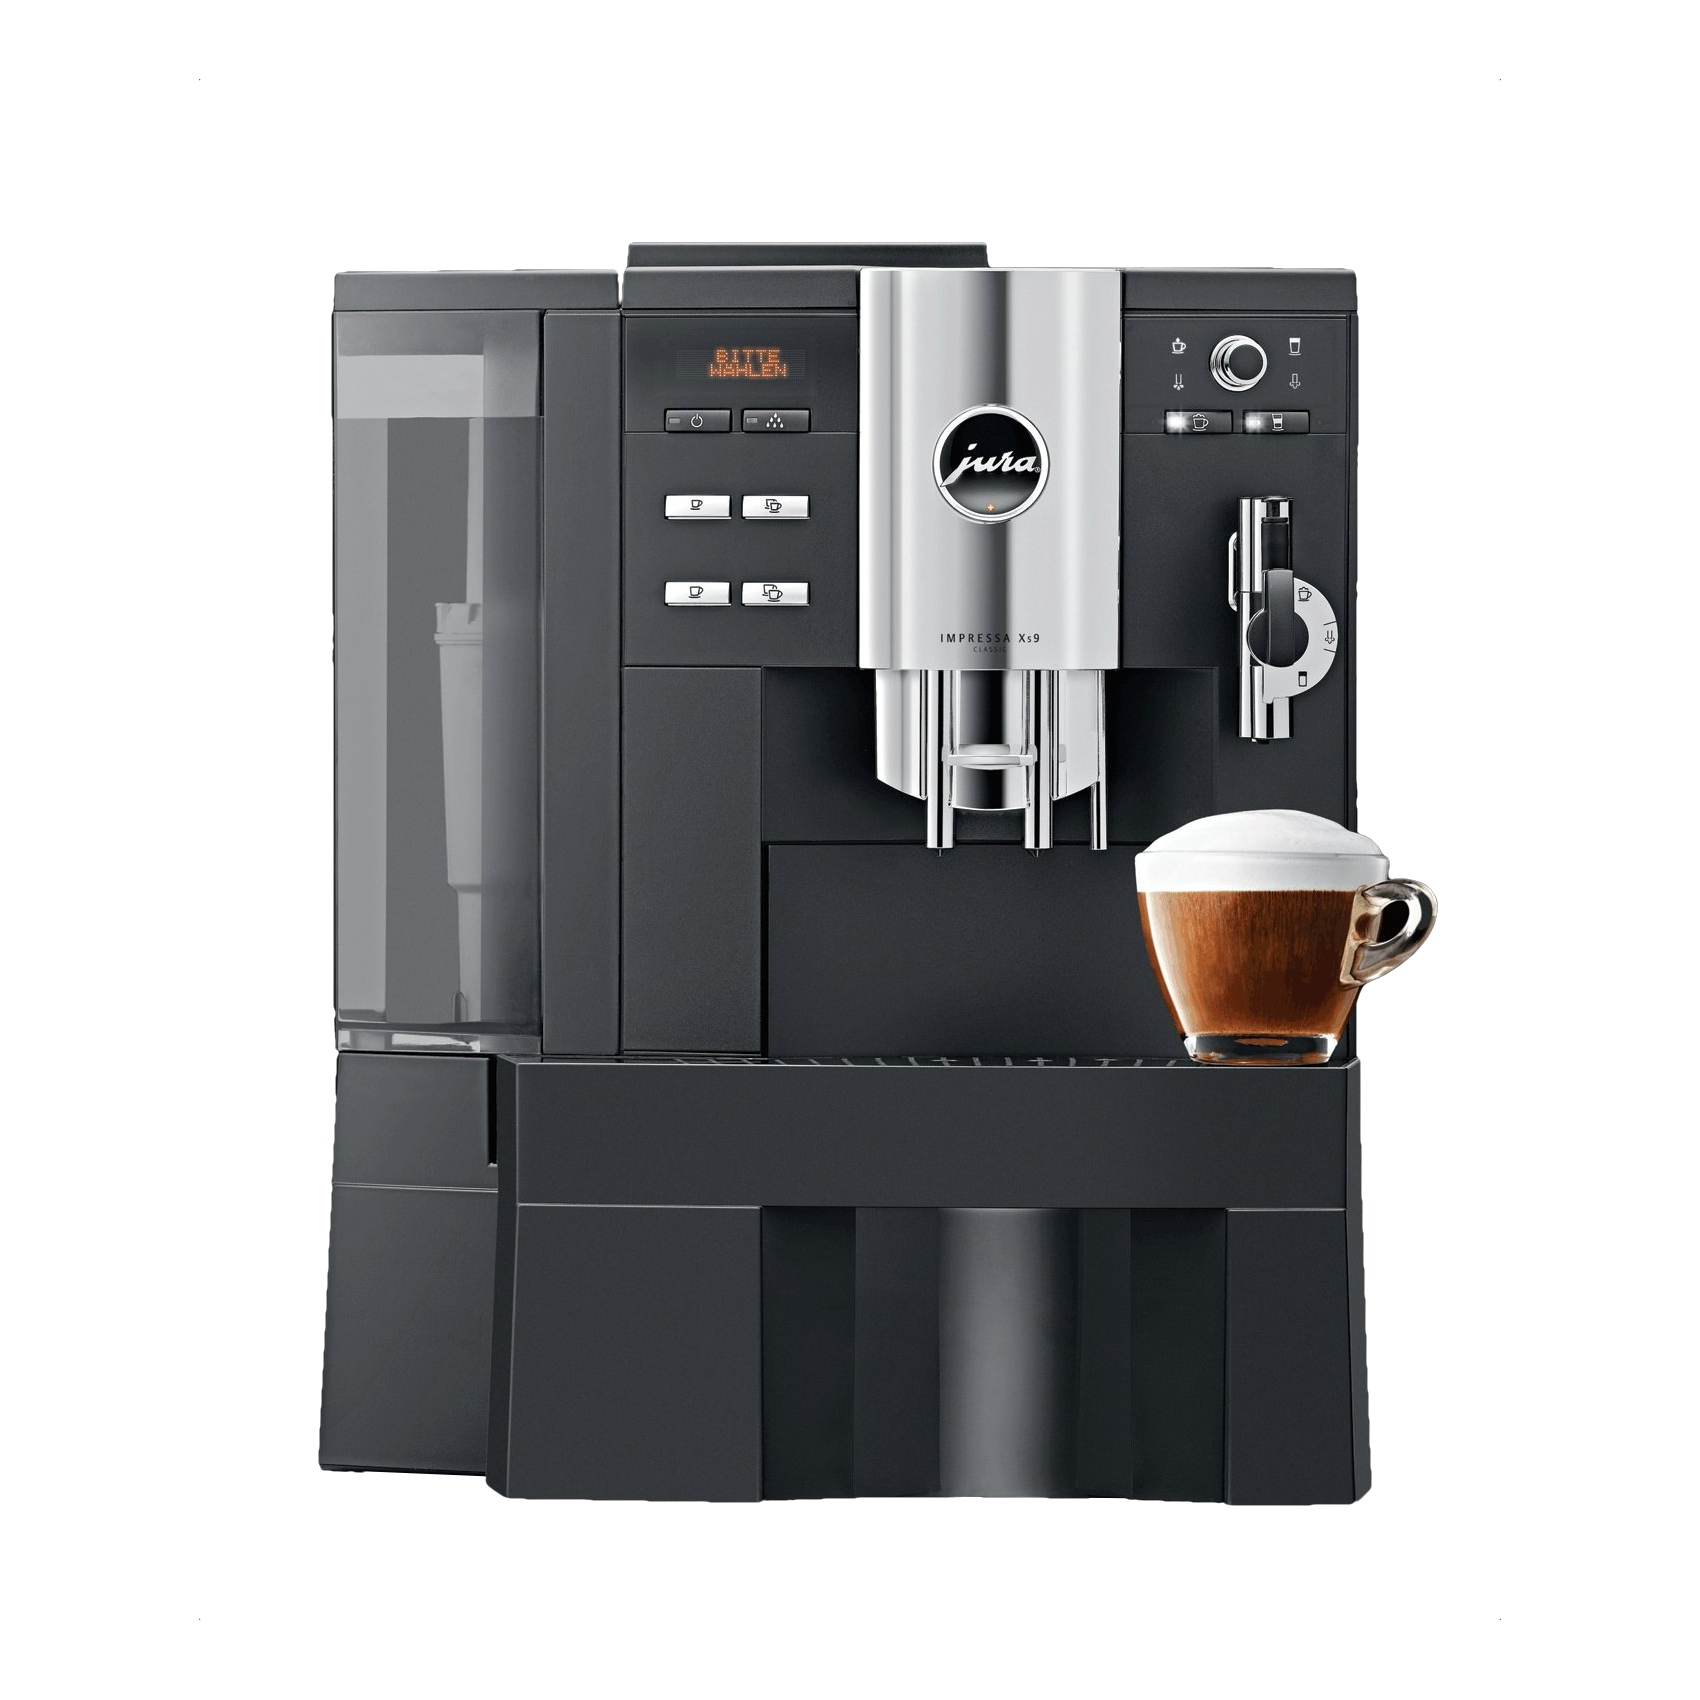 jura impressa xs9 classic coffee vending machines coffee machine rentals. Black Bedroom Furniture Sets. Home Design Ideas